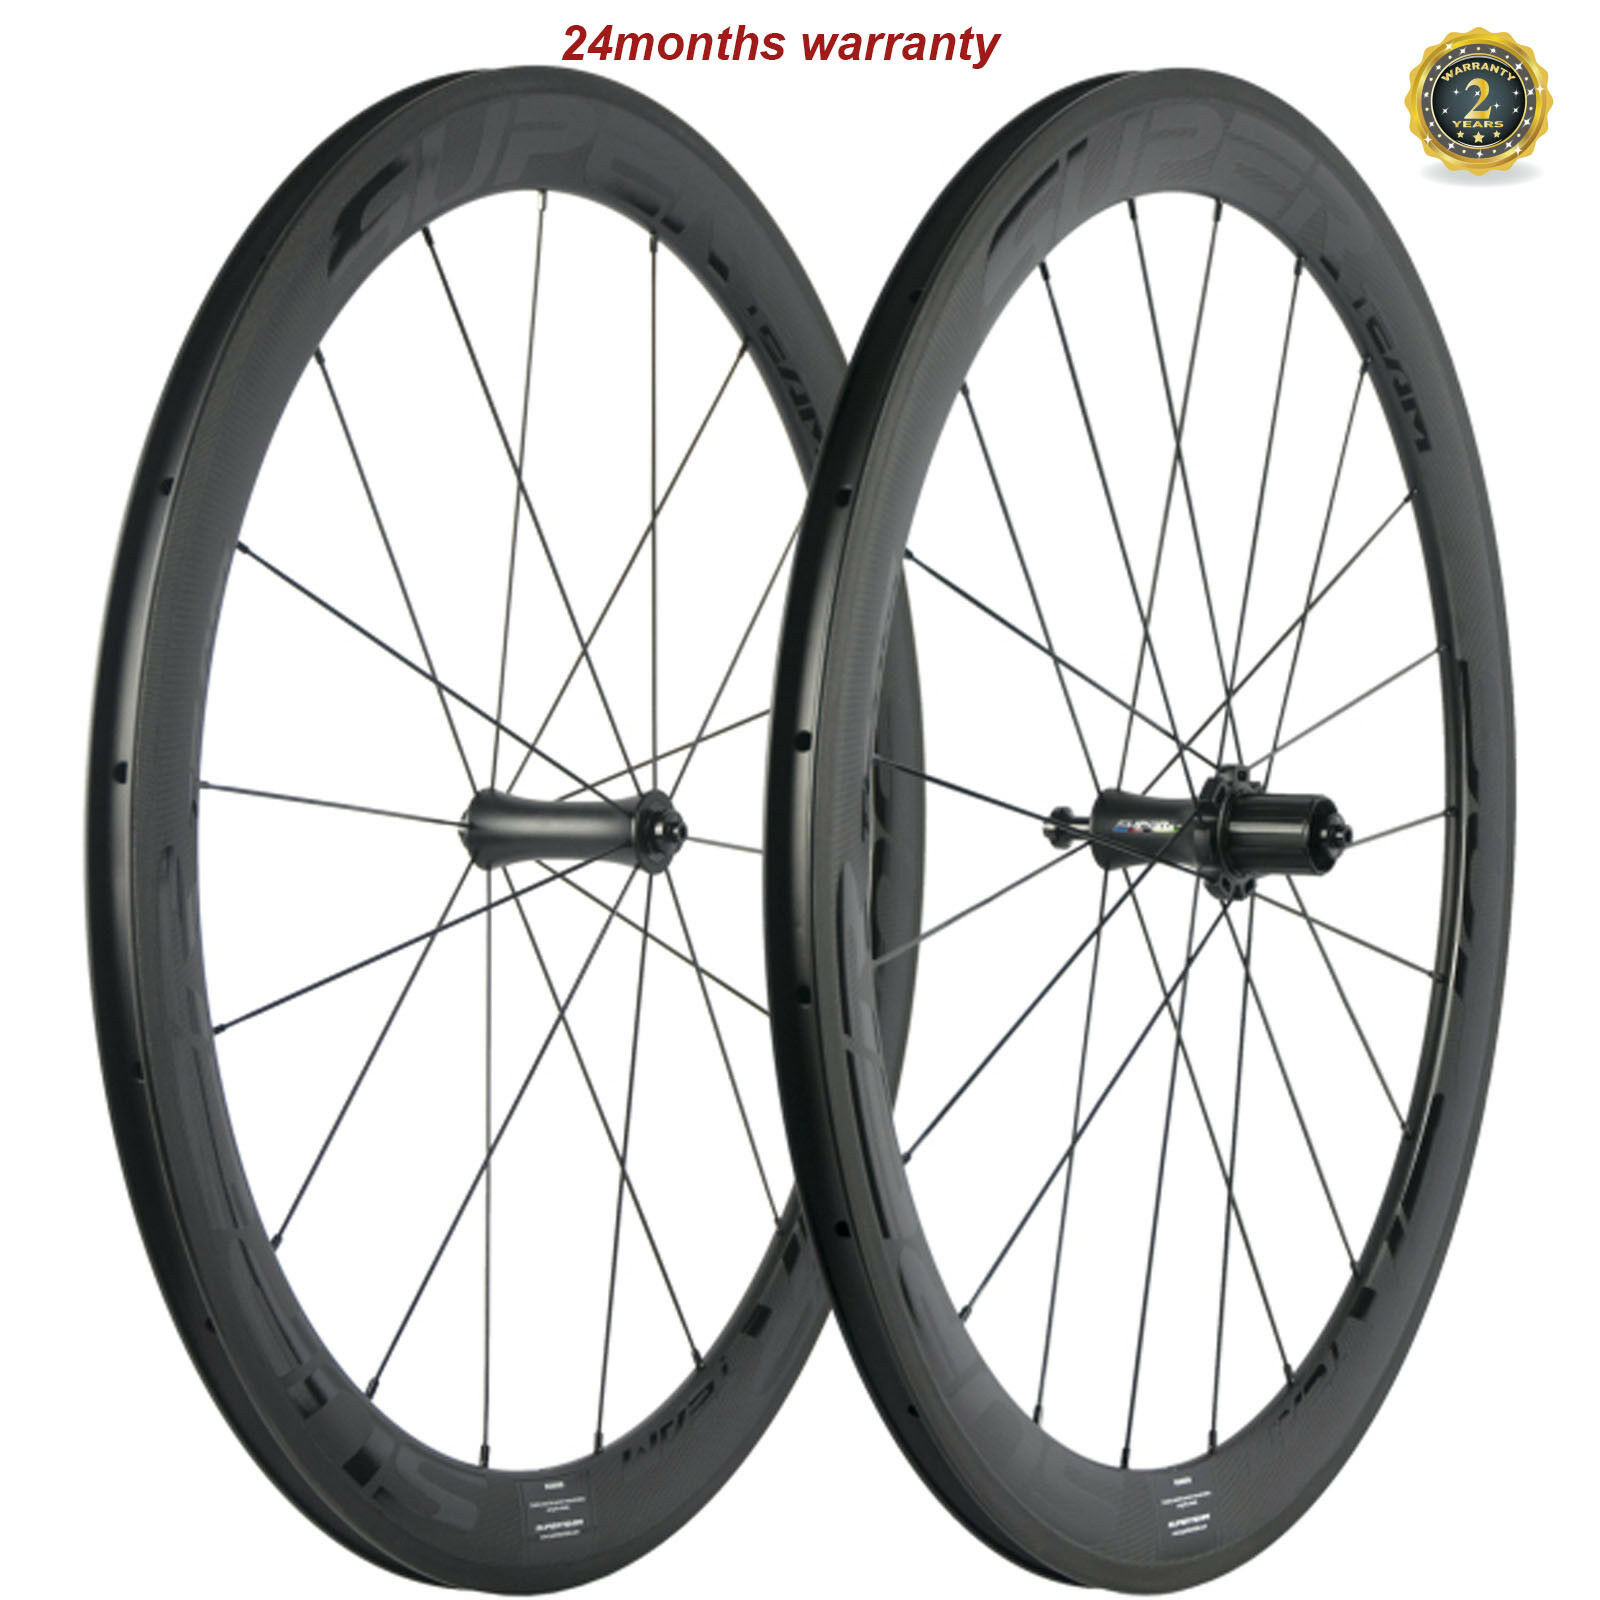 SUPERTEAM Carbon Road Bicycle Wheels 23mm Width 50mm Clincher Wheelset  R7 Hub  save up to 70%